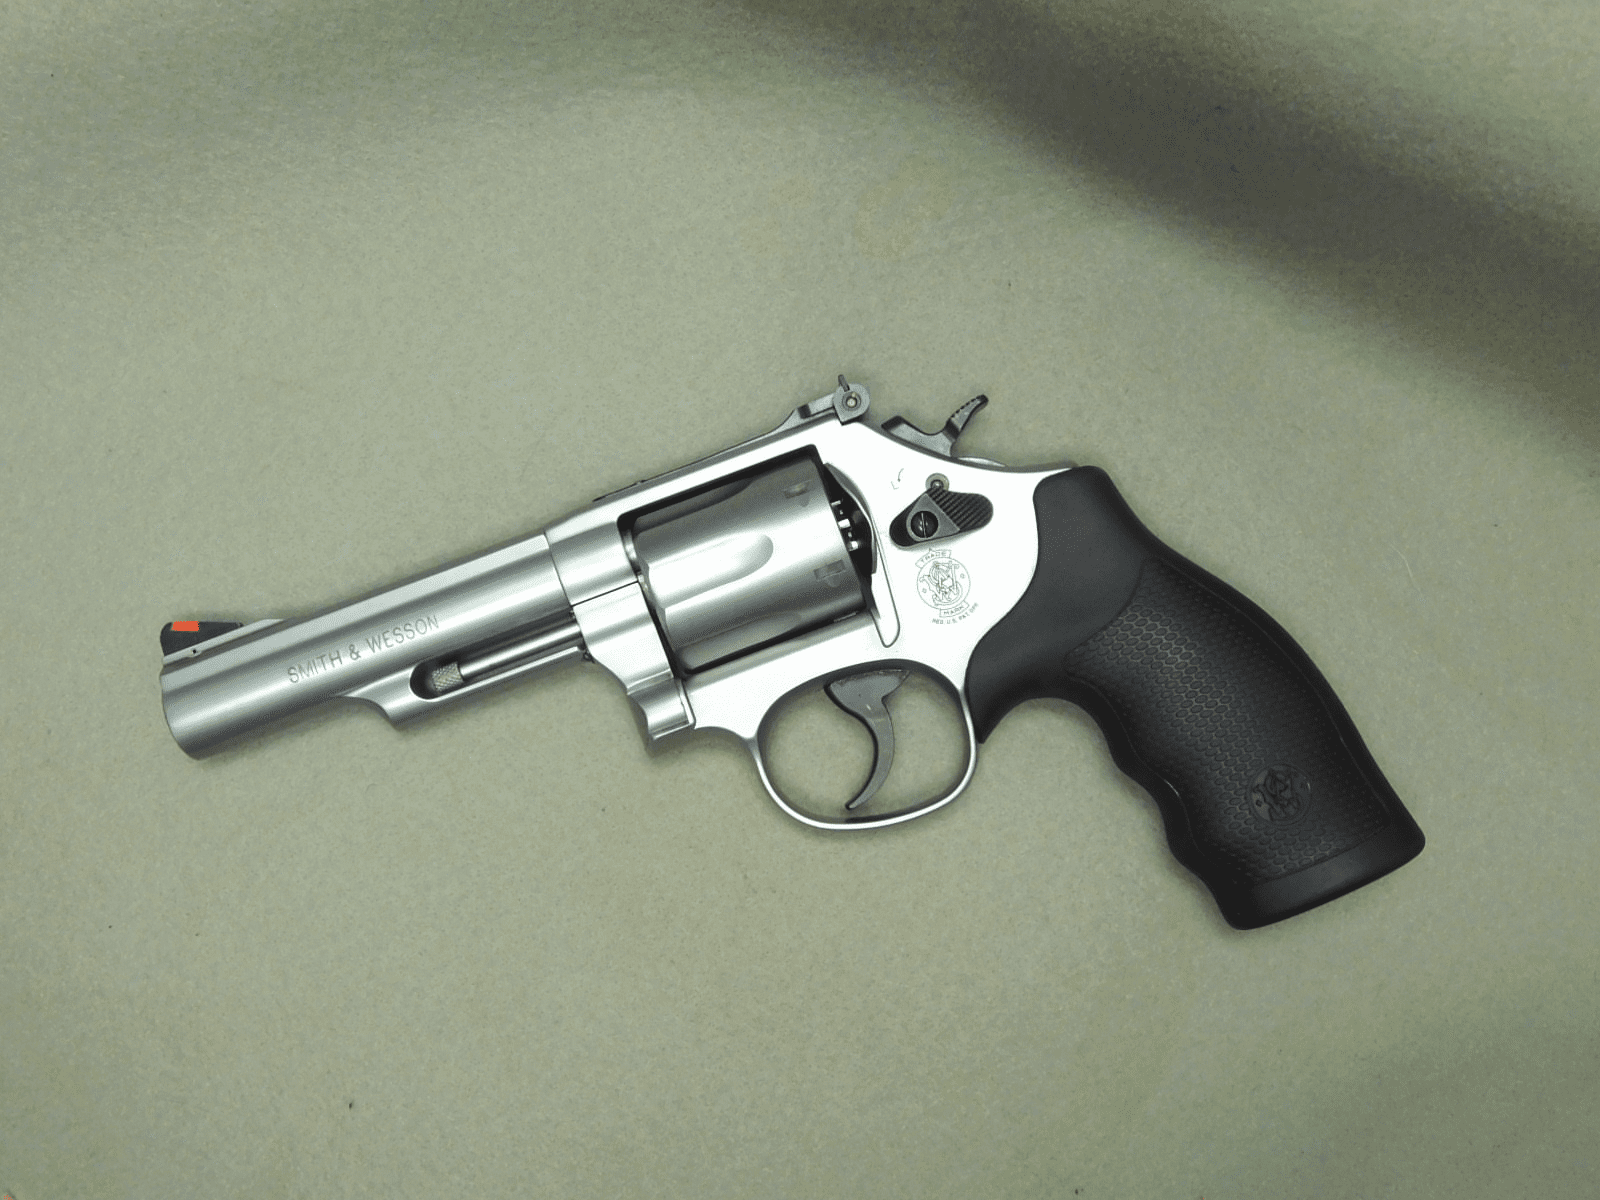 Smith & Wesson 66-8 (.357)